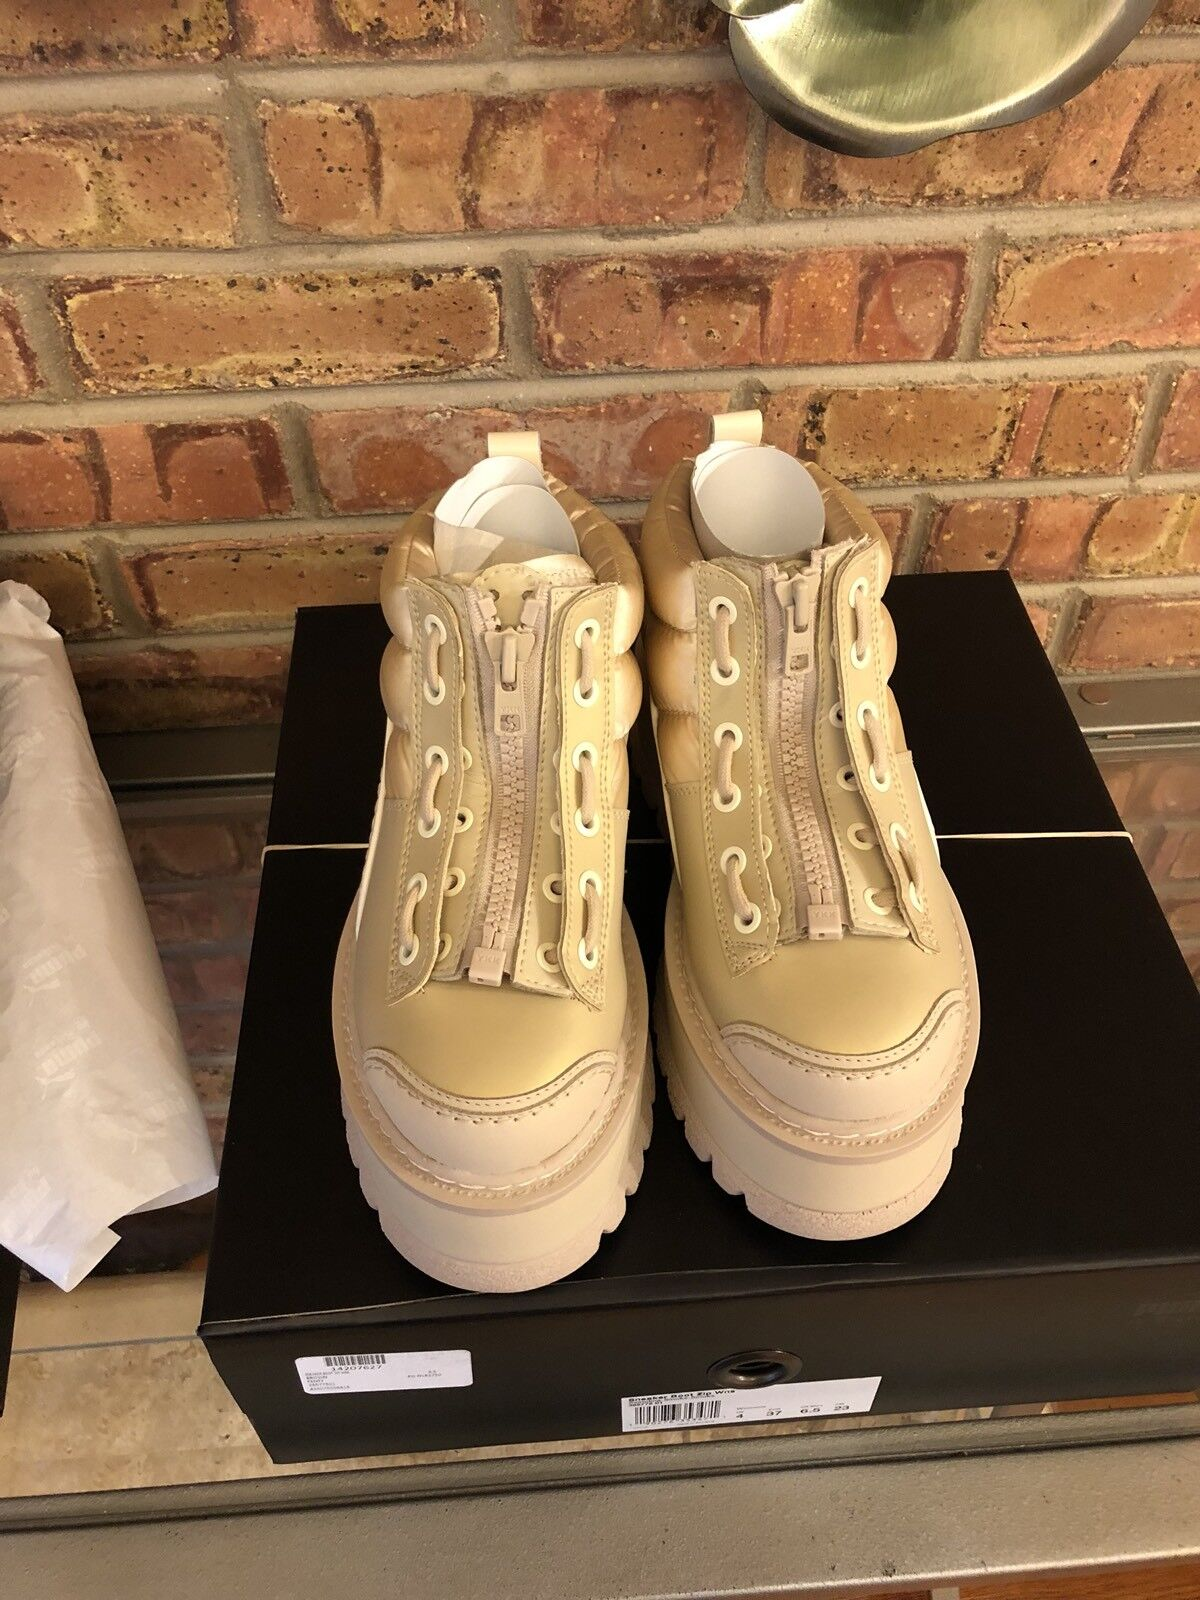 NEW FENTY PUMA Womens Sz 9.5 Rihanna Platform Boot Semolina Brown zip-up